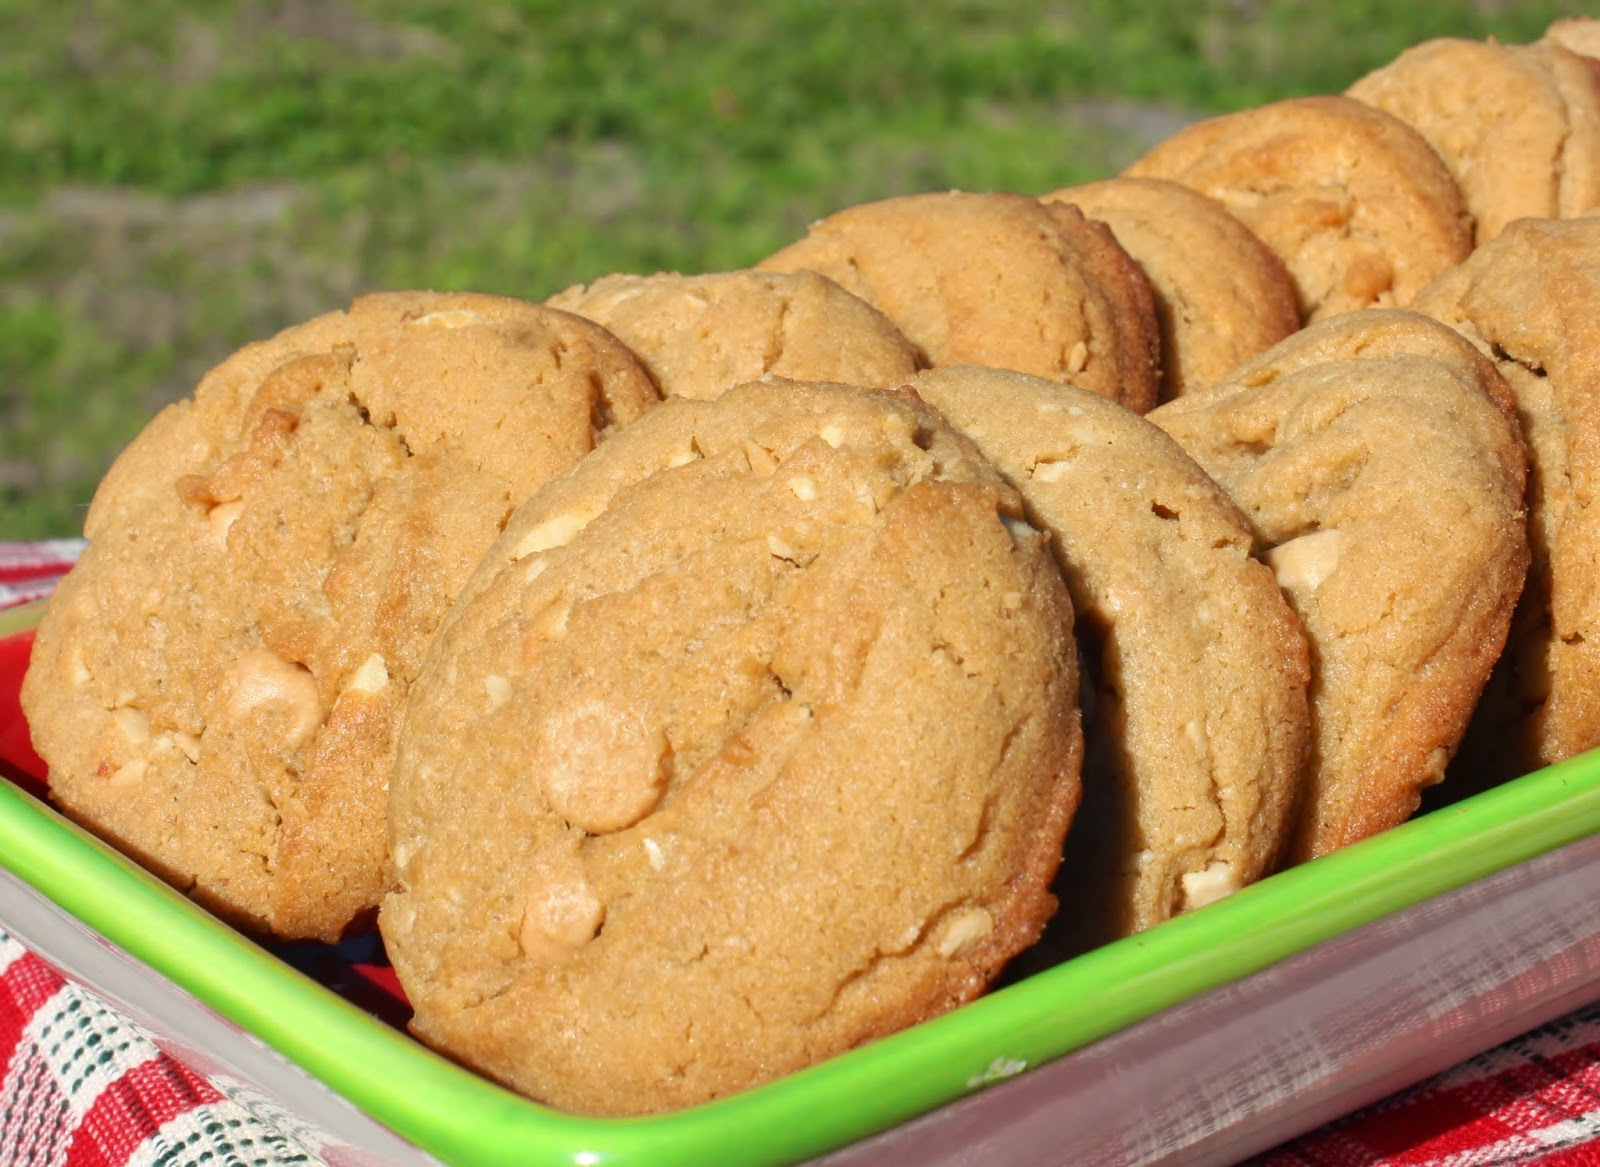 Best of Long Island and Central Florida: Triple Play Peanut Butter Cookies